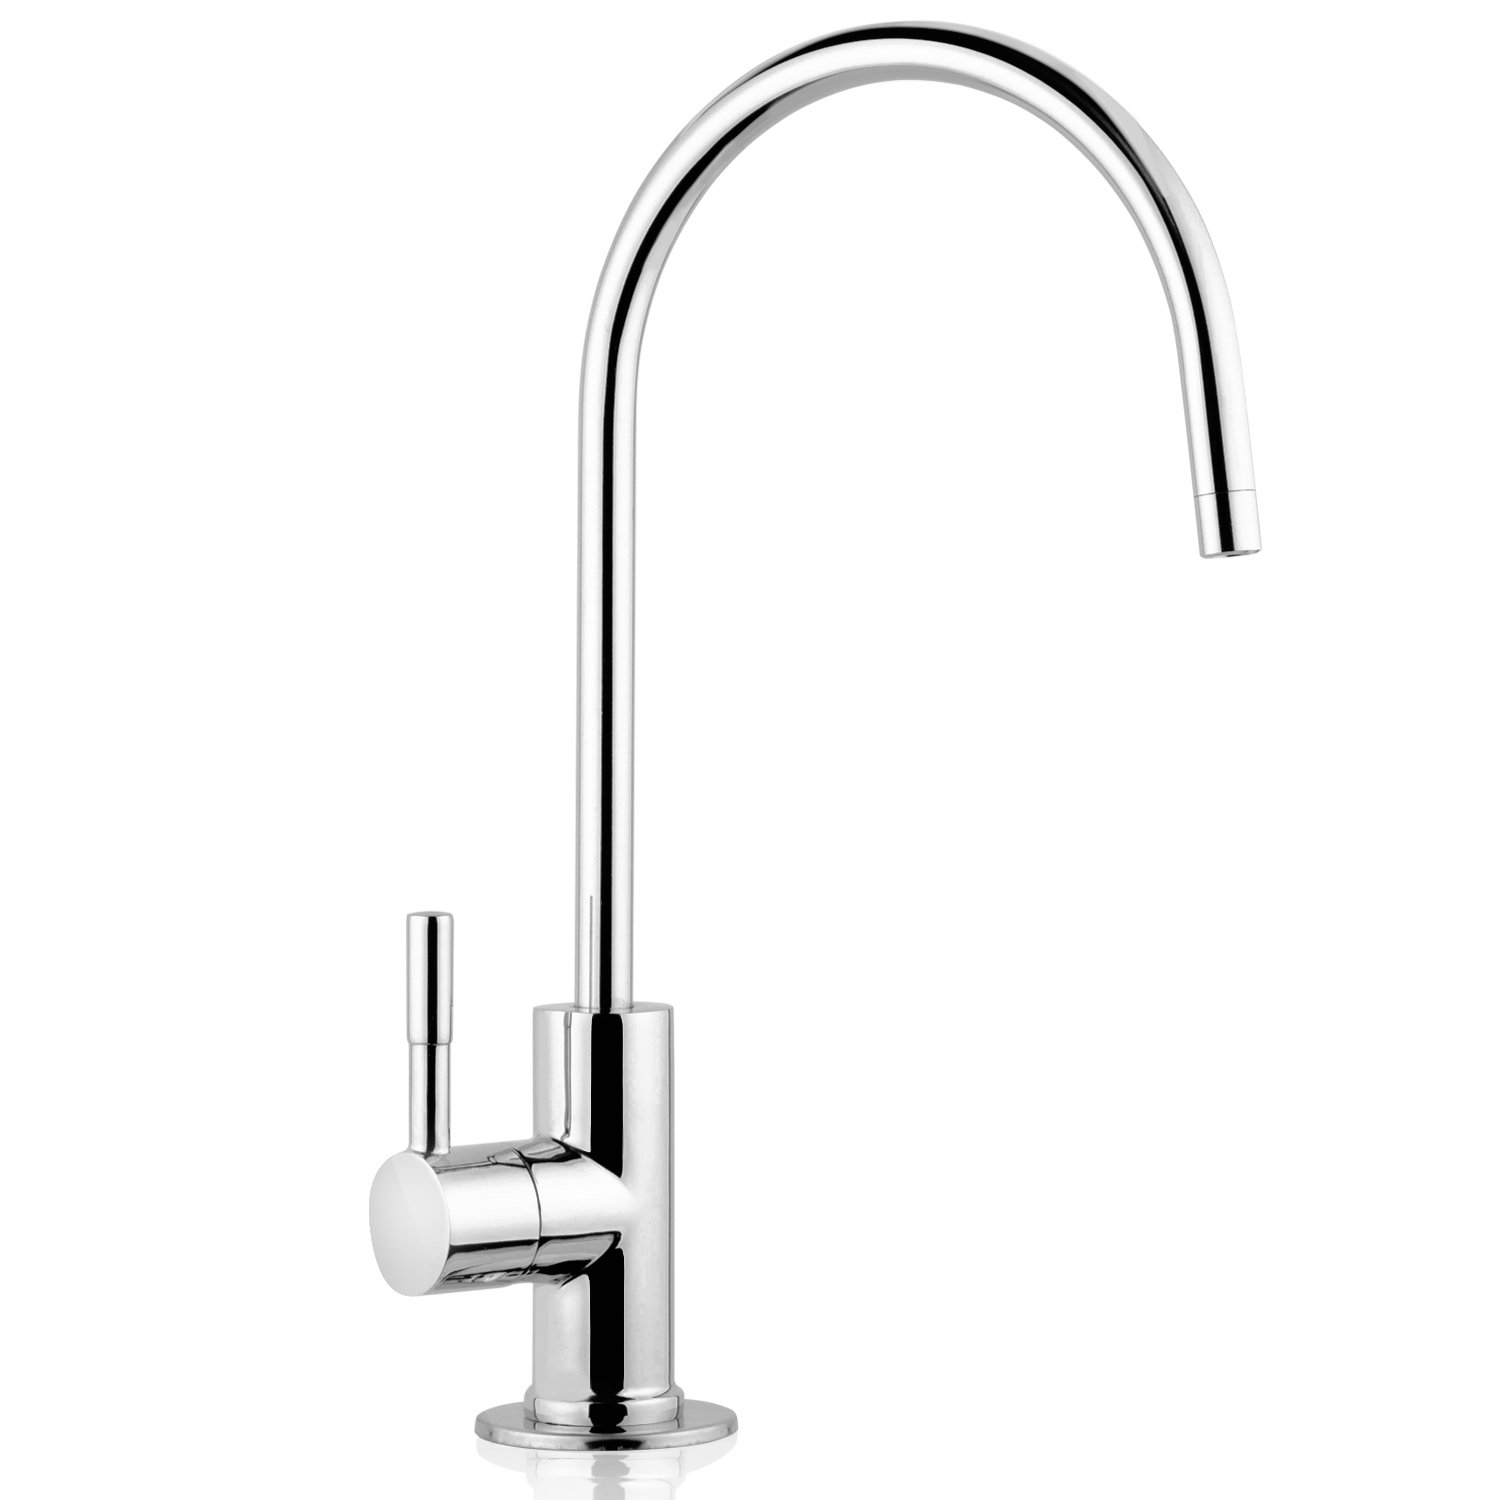 iSpring GA1-B Heavy Duty Kitchen Bar Sink Non-Air Gap Drinking, Commercial Water Filtration Faucet-Luxury Chrome-Contemporary Style High-Spout, Polished